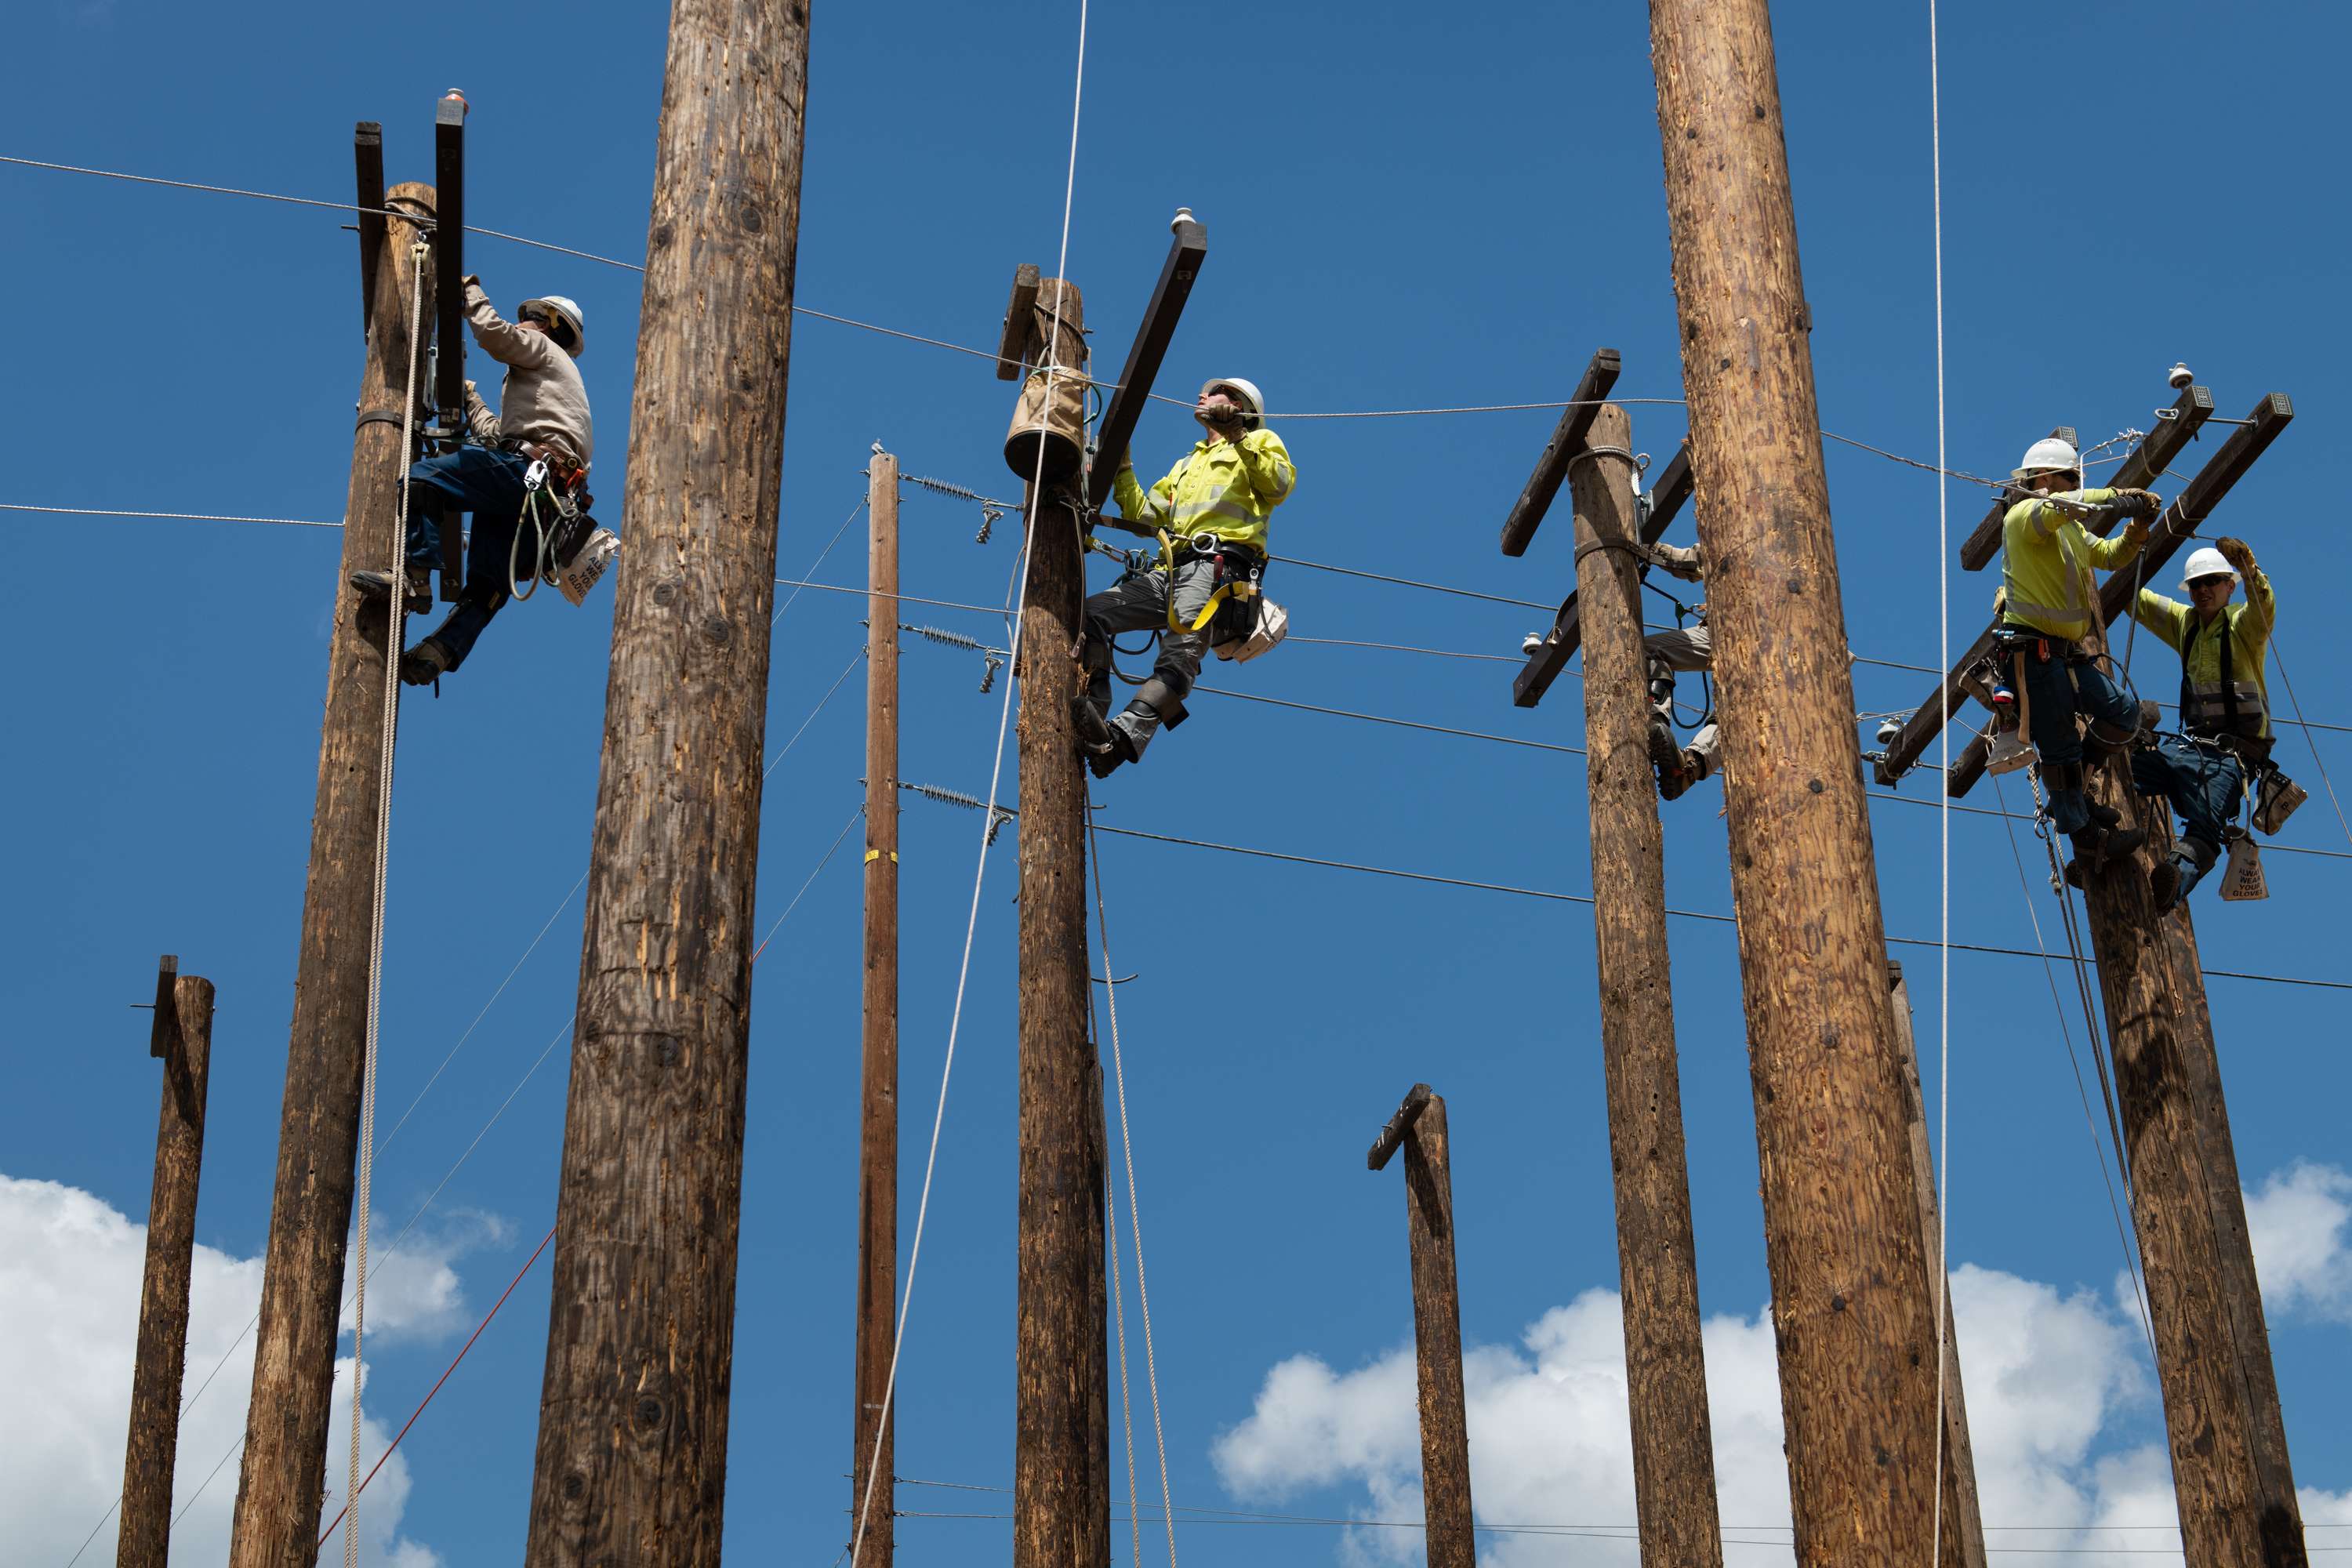 Apprentices train on poles at SCE's lineman training center in Chino.